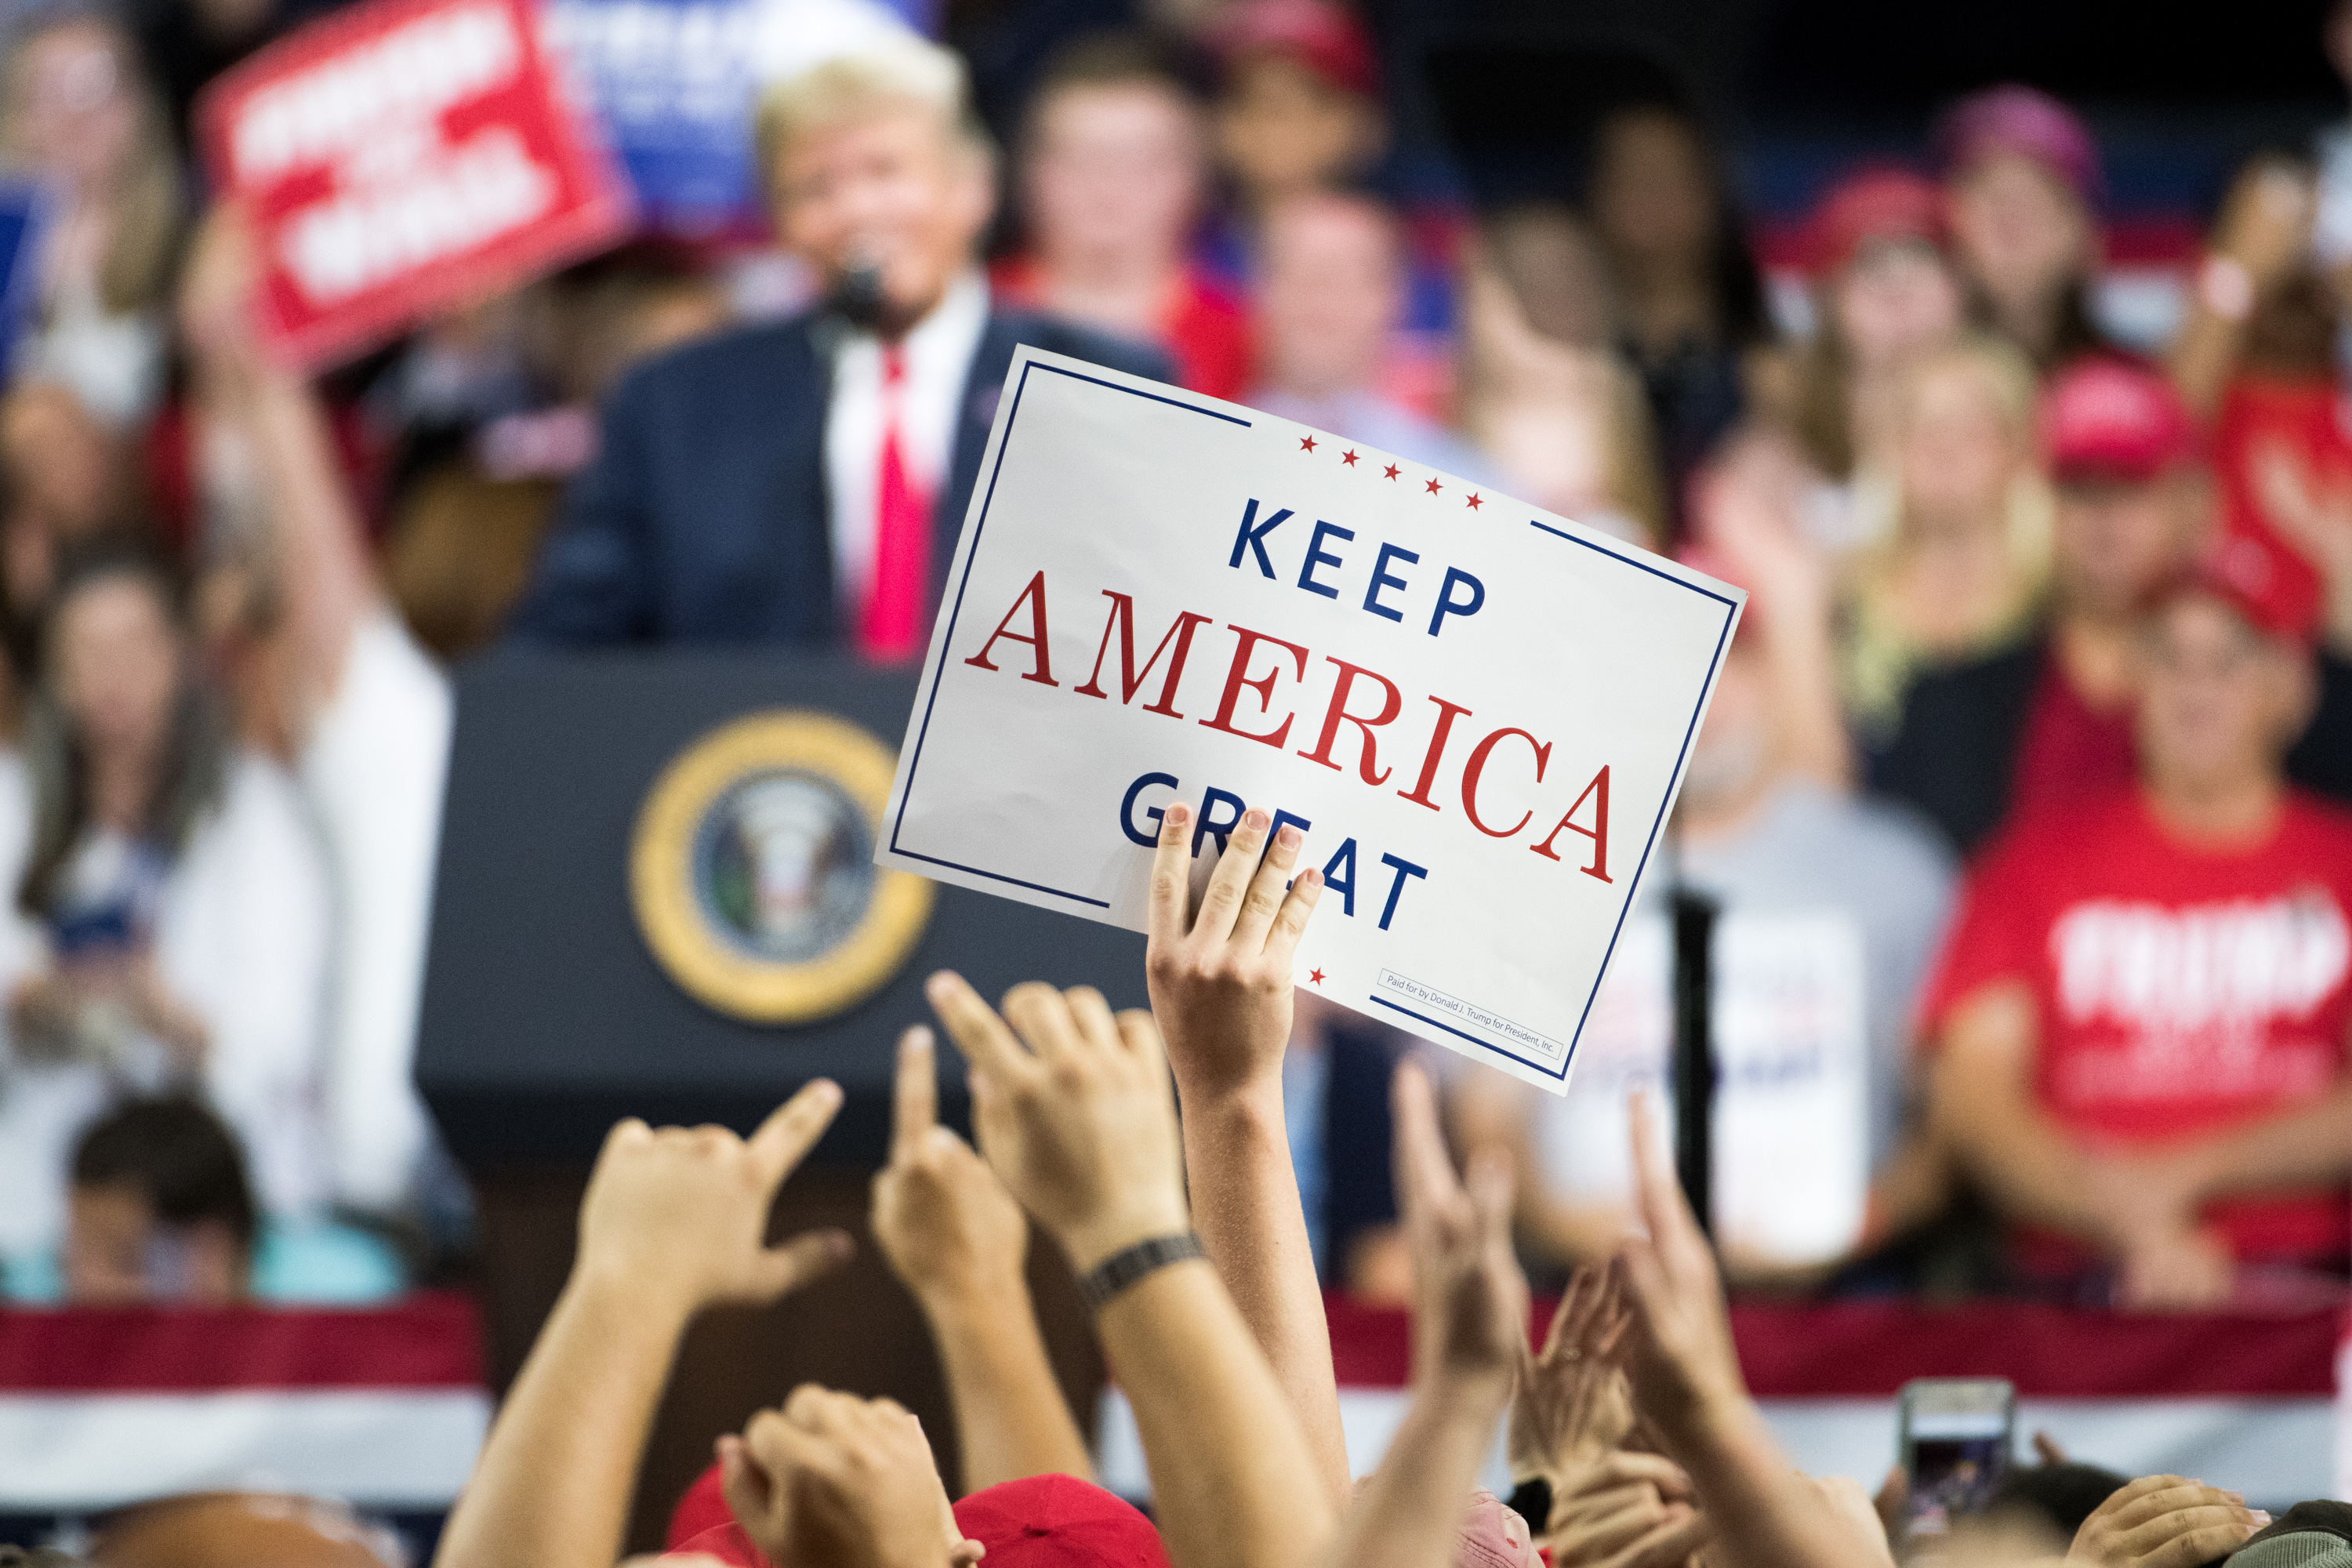 JOHNSON CITY, TN - OCTOBER 01: President Donald Trump speaks to the crowd during a campaign rally at Freedom Hall on October 1, 2018 in Johnson City, Tennessee. President Trump held the rally to support Republican senate candidate Marsha Blackburn. (Photo by Sean Rayford/Getty Images)